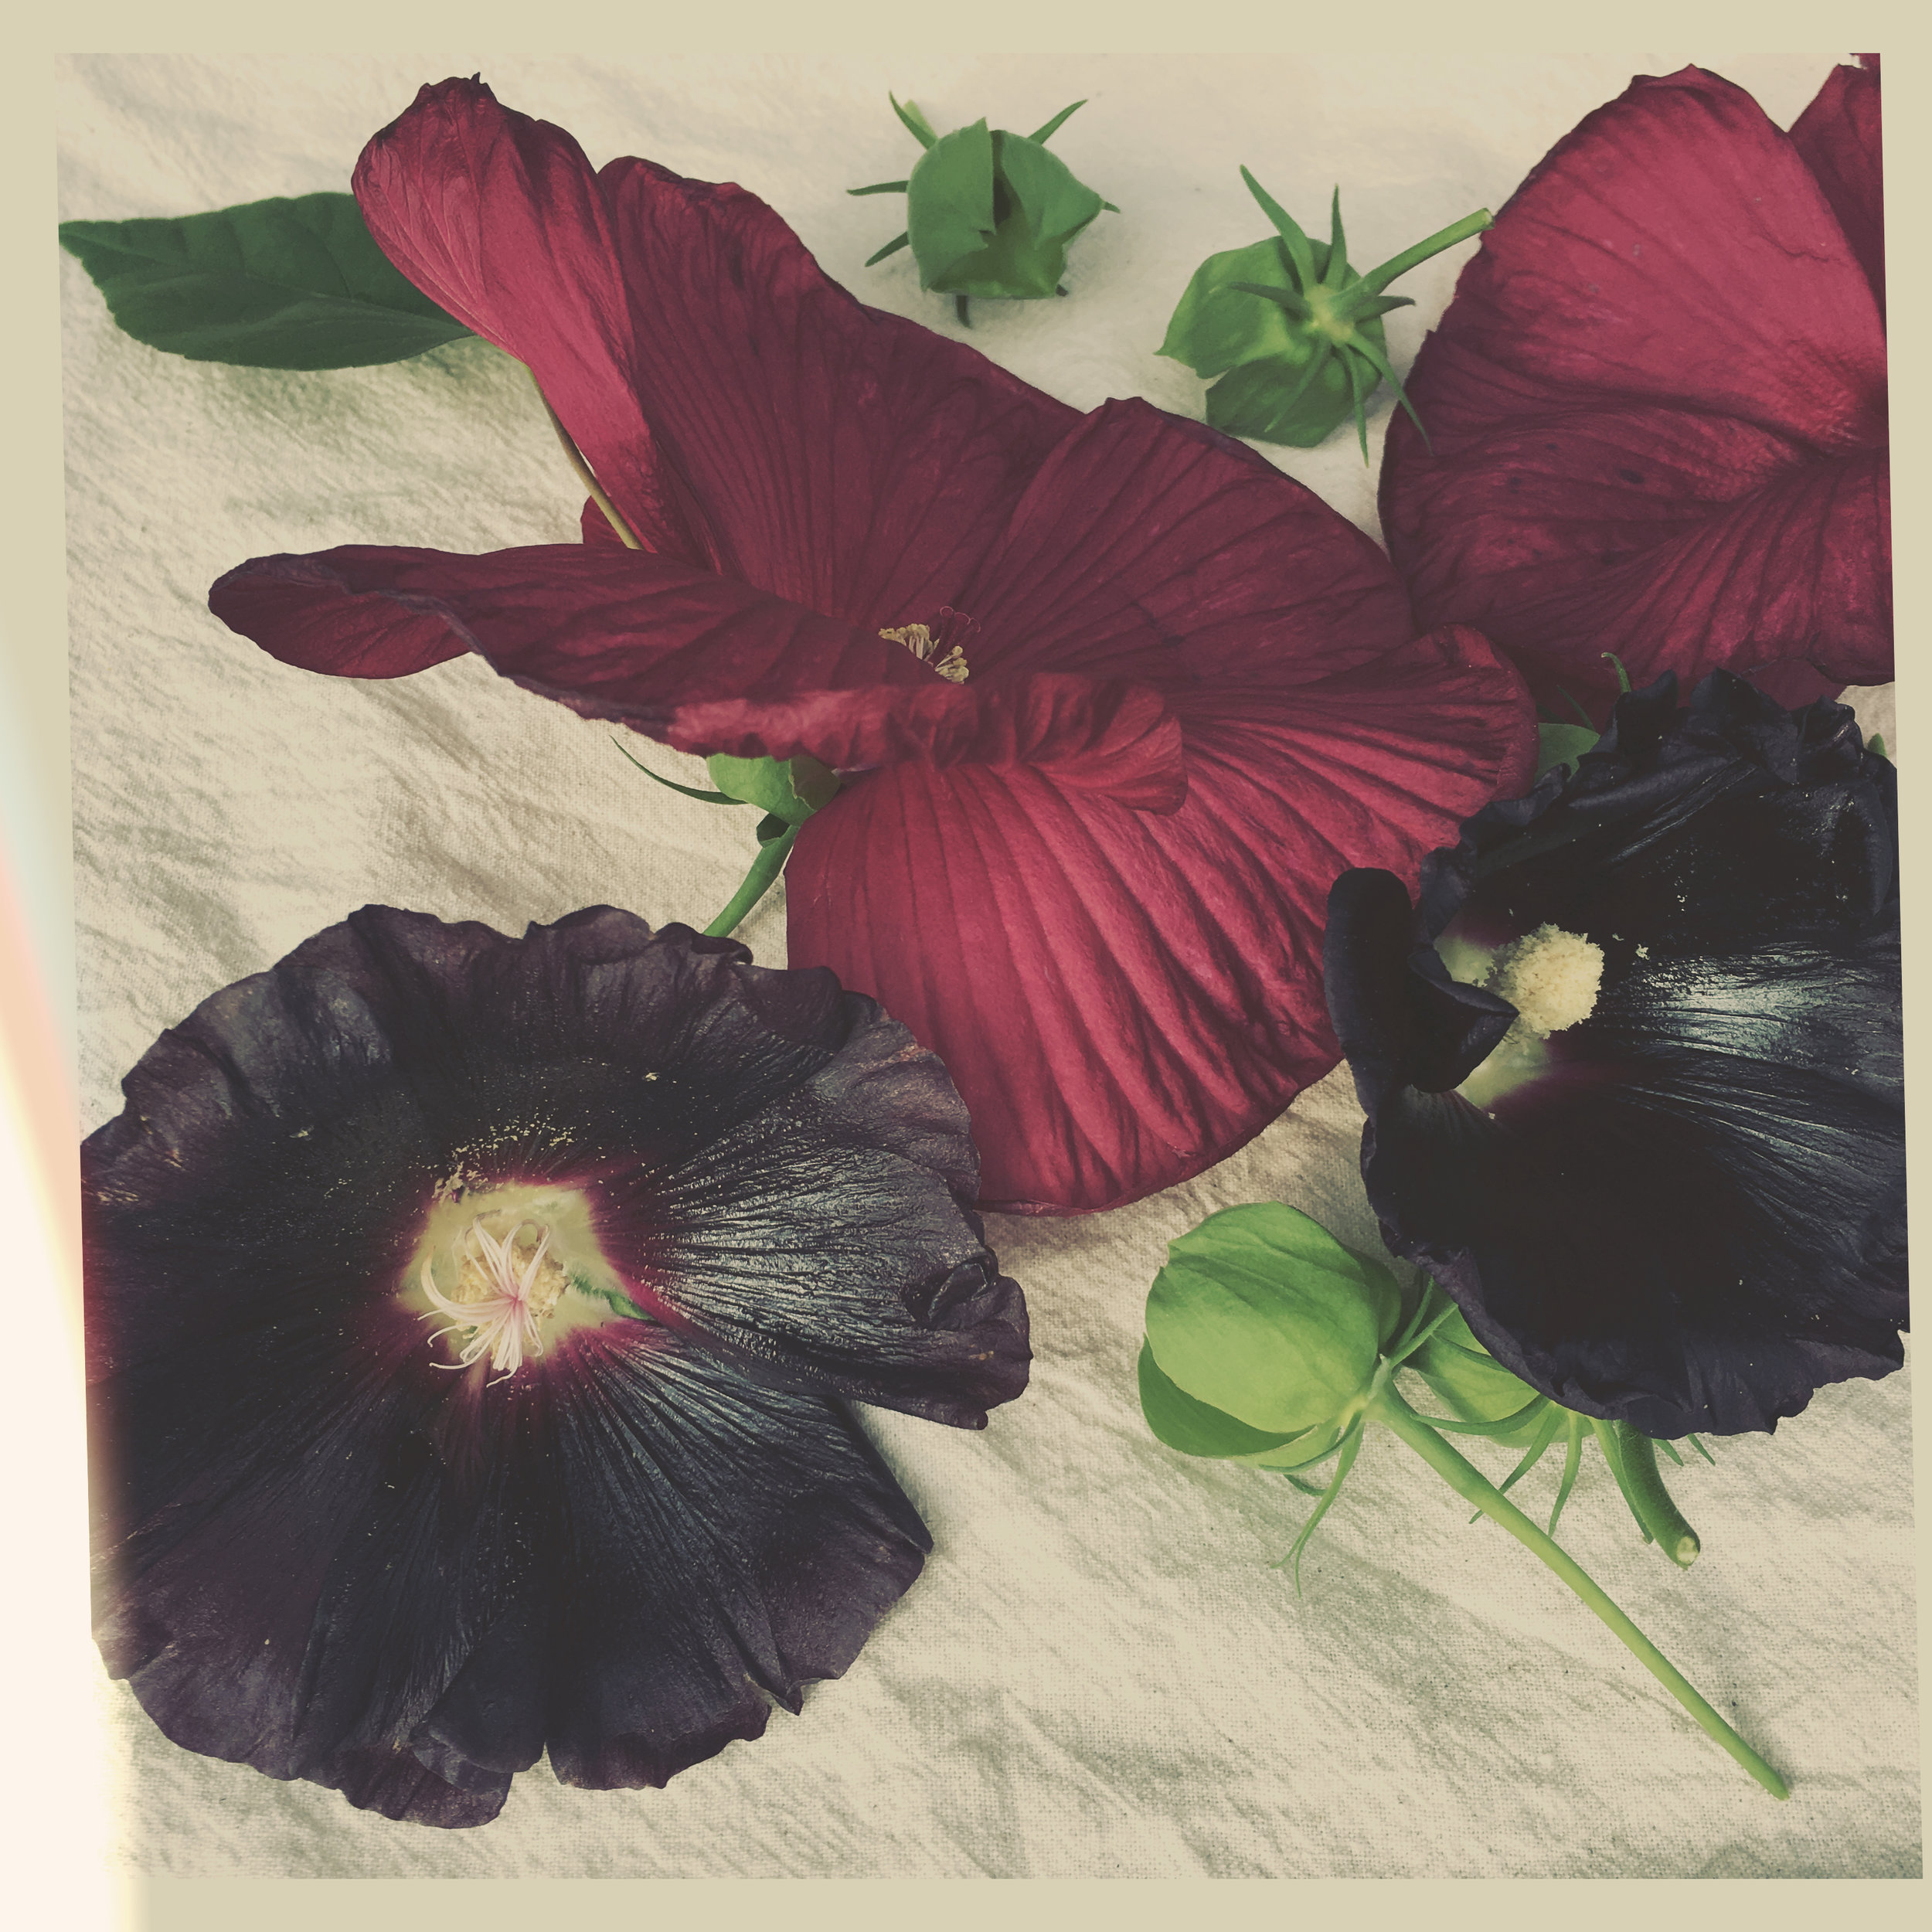 Deep red Hibiscus (above) shown with Nigra hollyhocks.